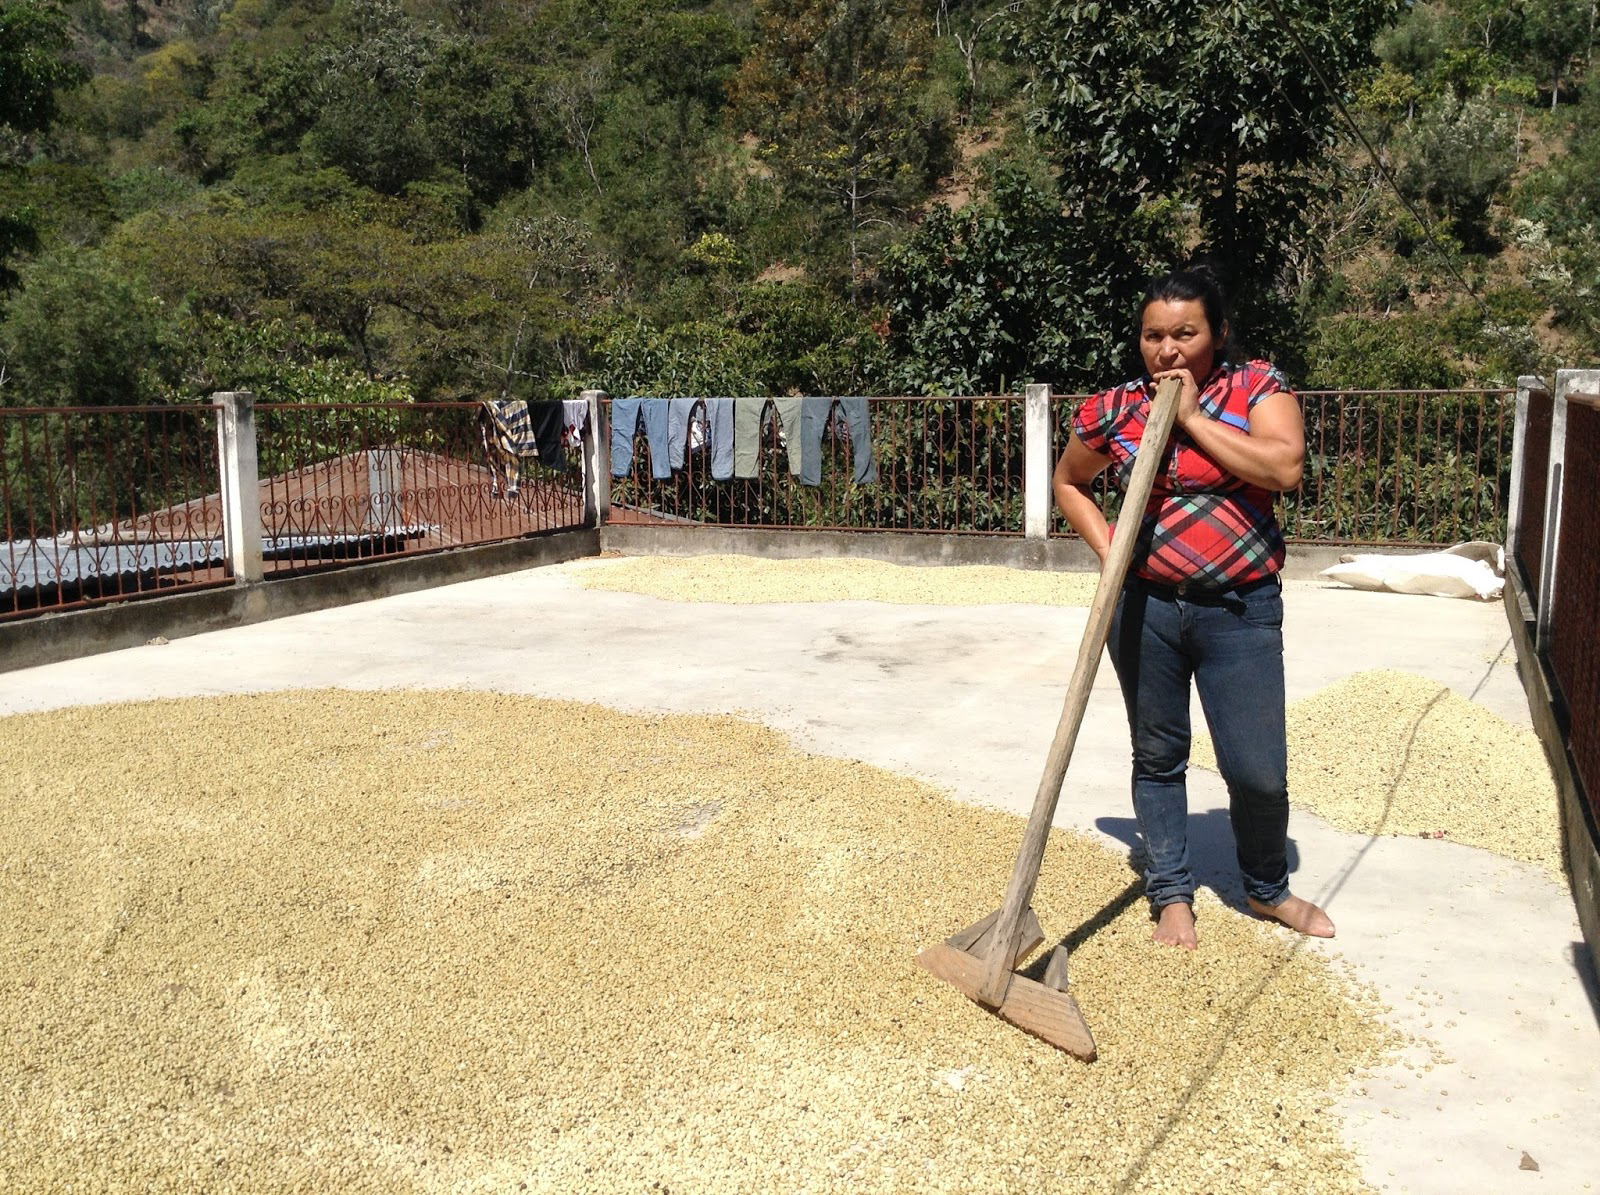 Orfa raking her coffee. The coffee dries on a cement patio for 4-5 days. The raking is done each hour helping for even drying.